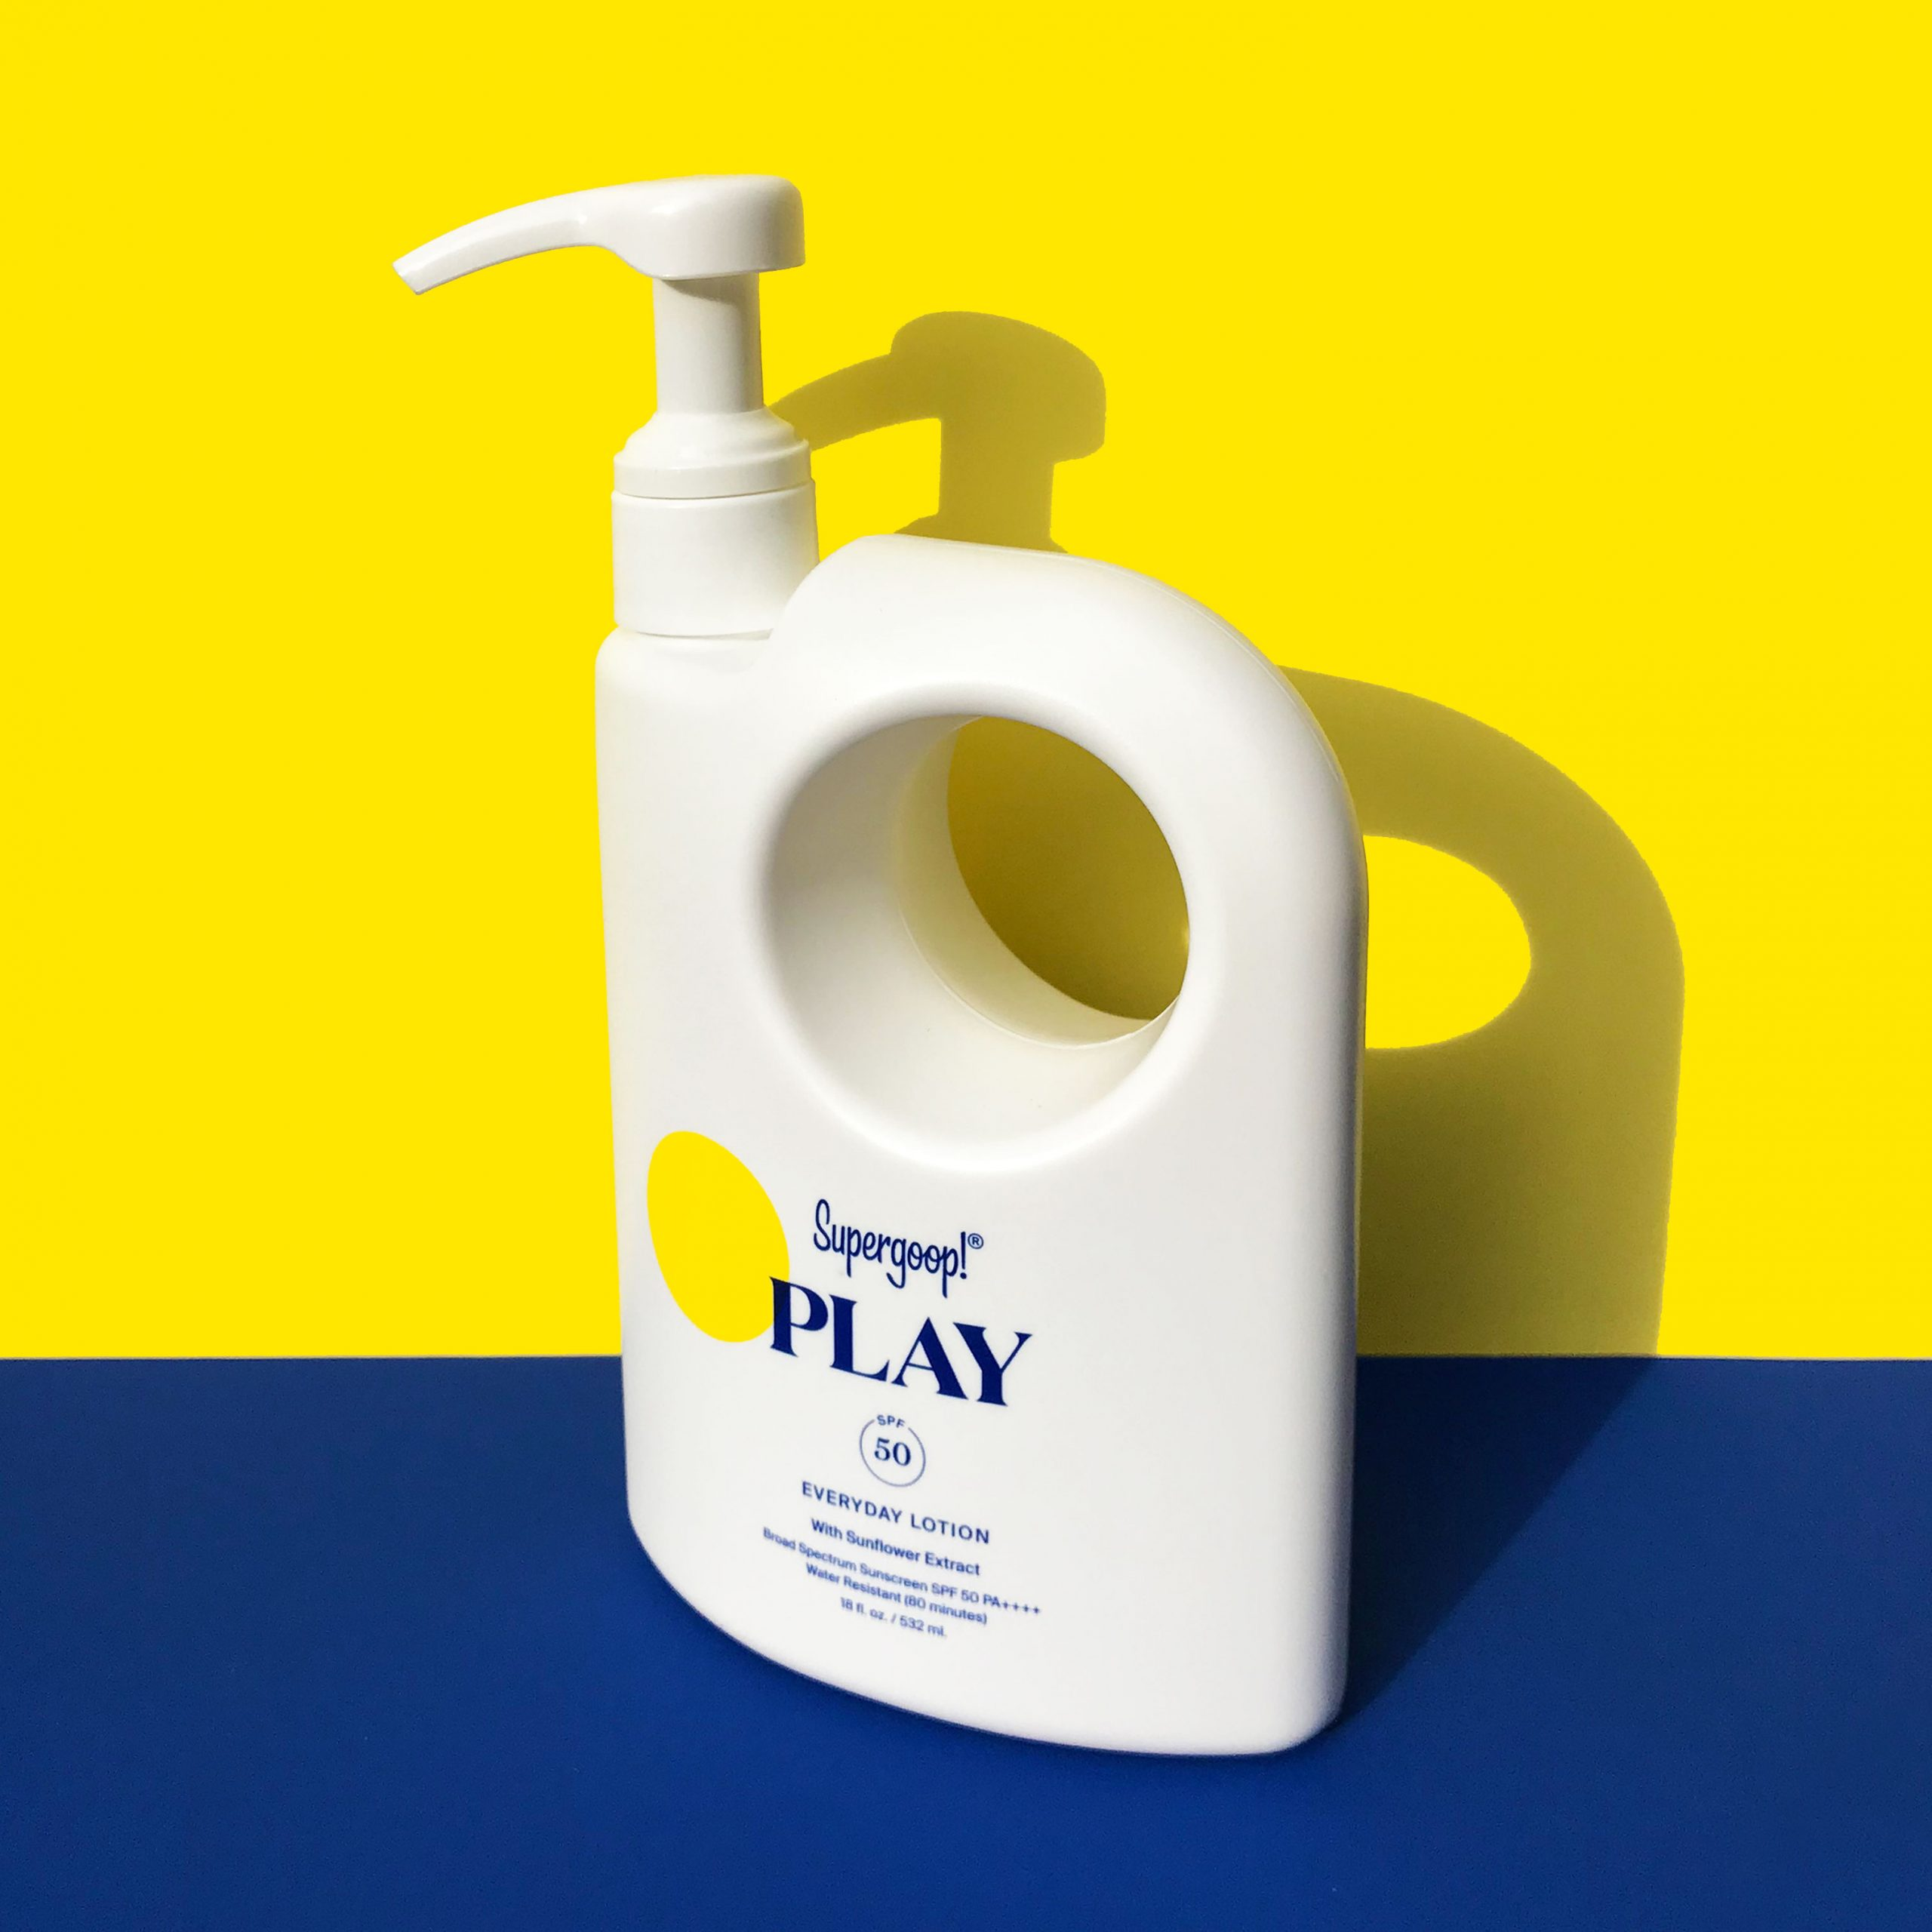 Supergoop Play Everyday Lotion